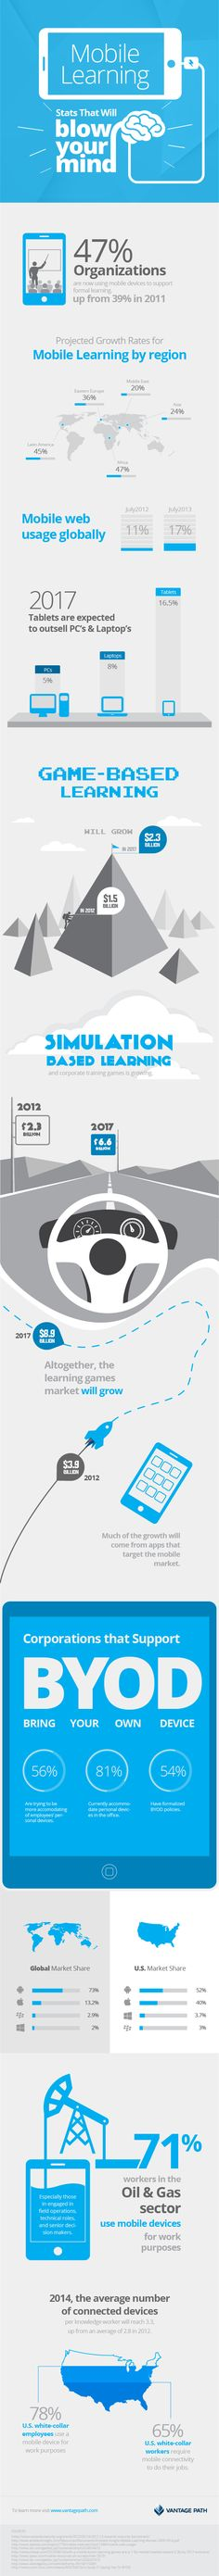 Top 9 Mobile Learning Stats Infographic - e-Learning Infographicse-Learning Infographics